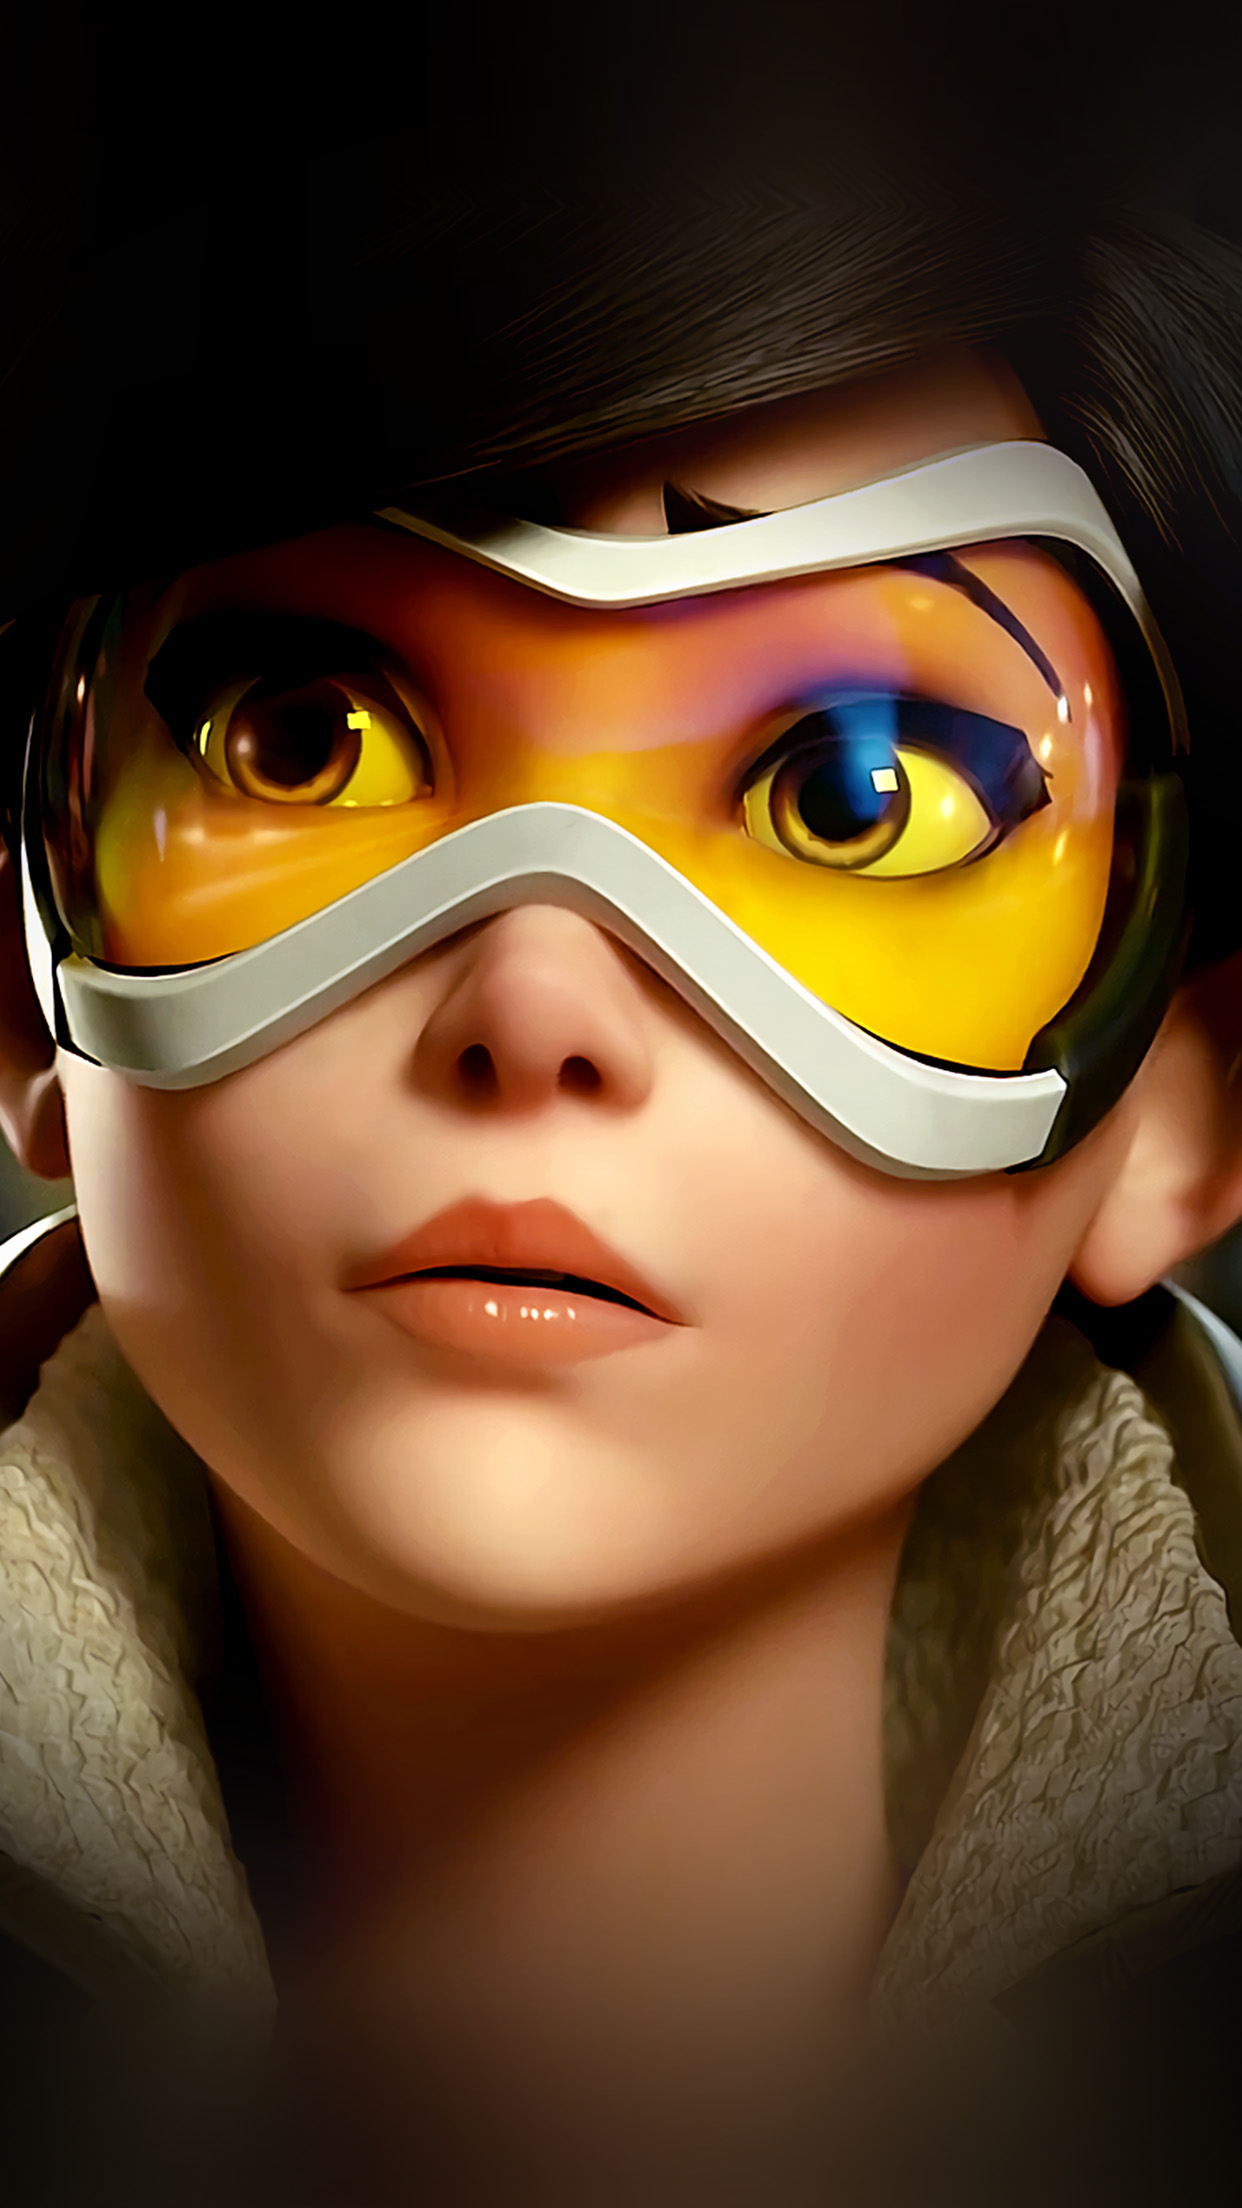 Overwatch Tracer 3Wallpapers iPhone Parallax Overwatch: Tracer